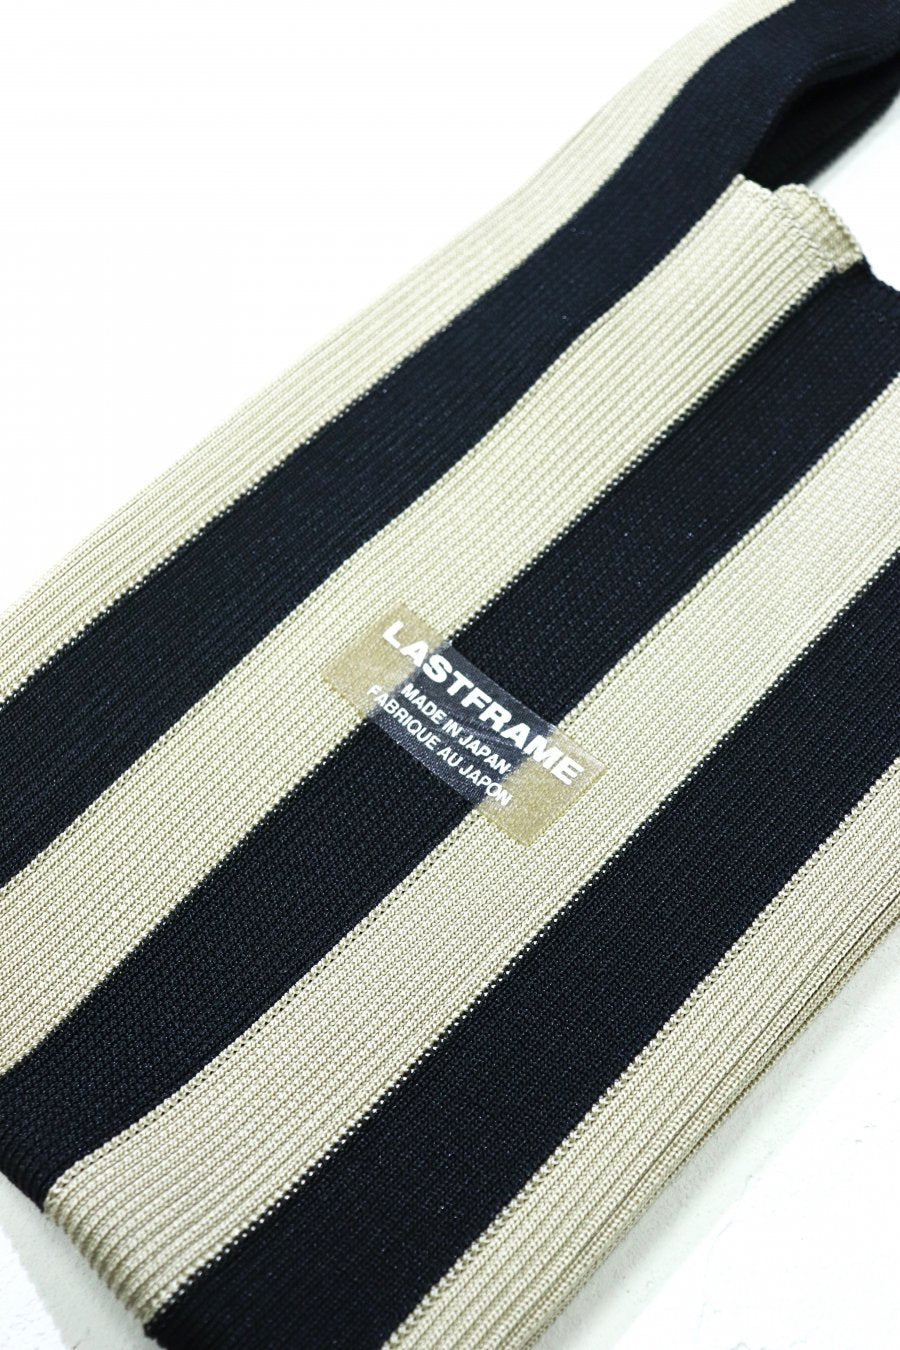 LASTFRAME STRIPE MARKET BAG SMALL(BLACK x BEIGE)